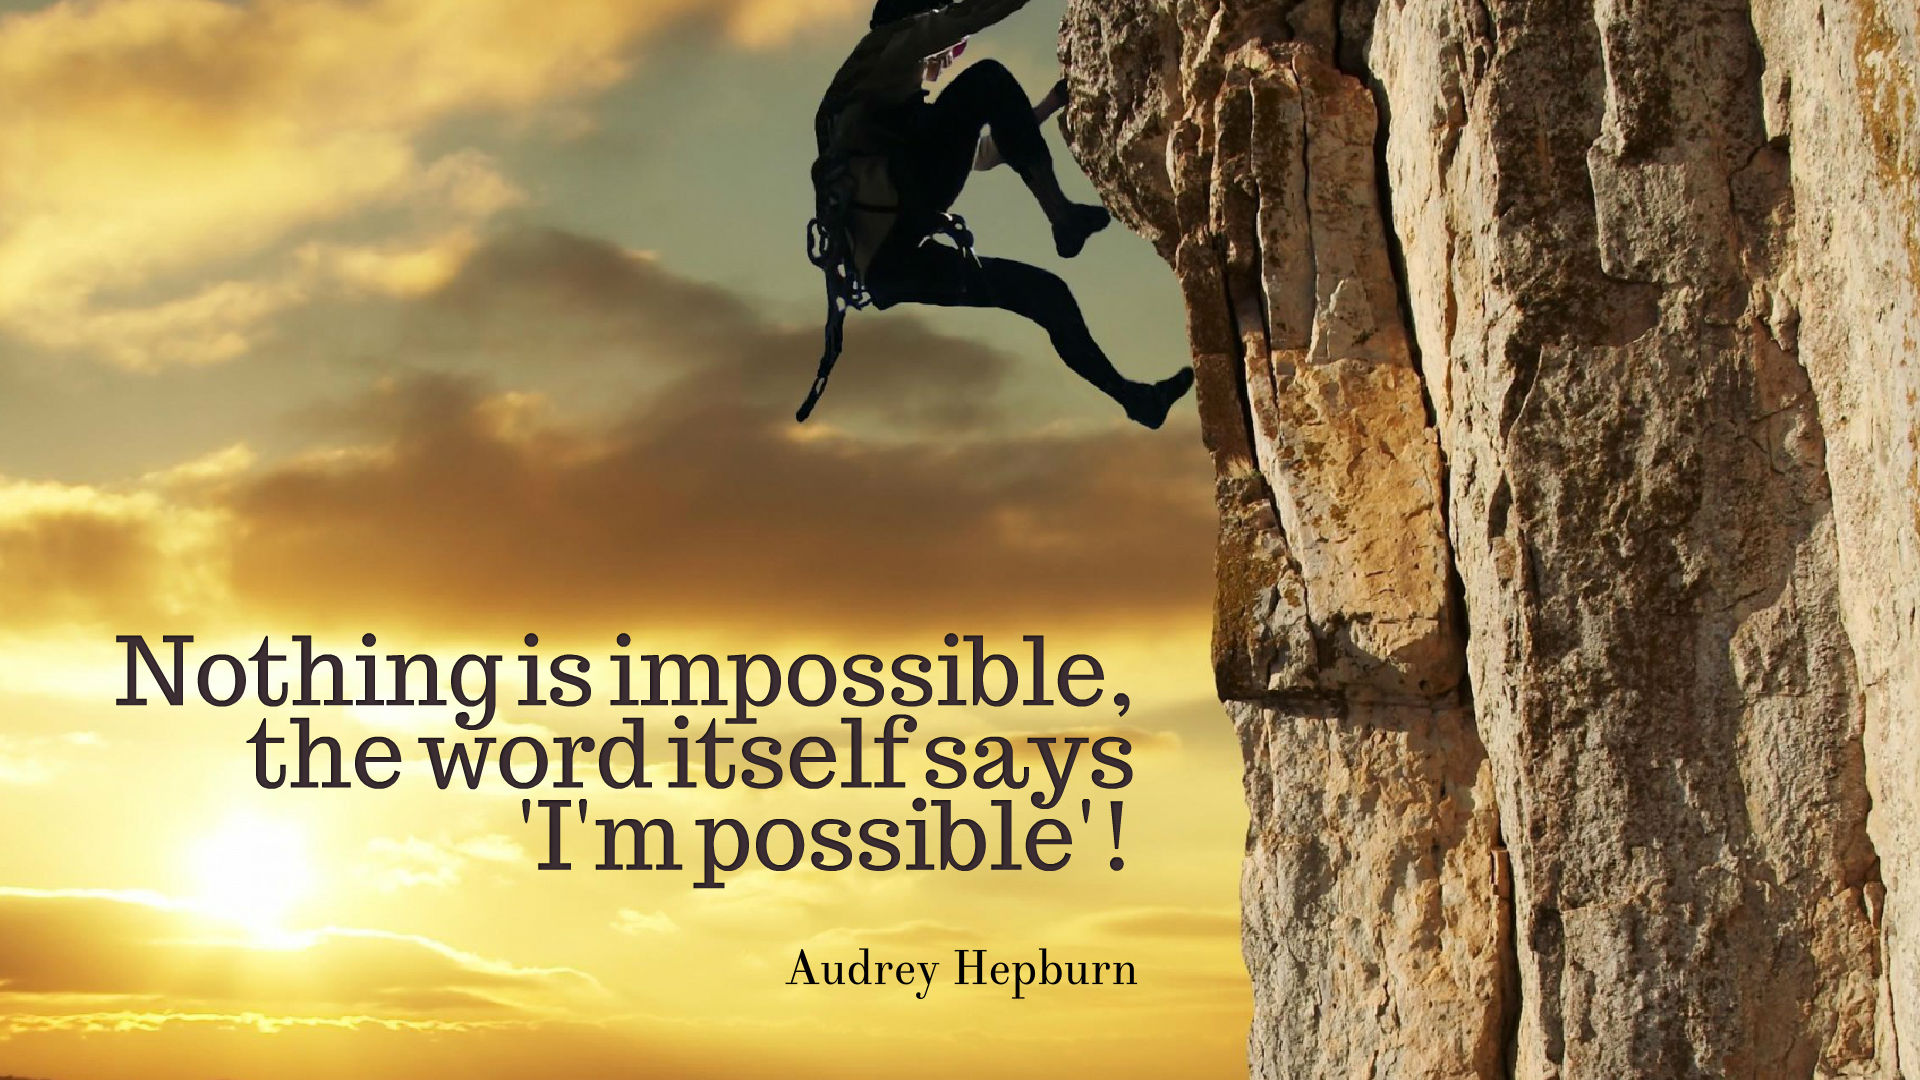 Inspirational Quotes Widescreen Wallpapers - Download Wallpapers With Inspirational Quotes - HD Wallpaper